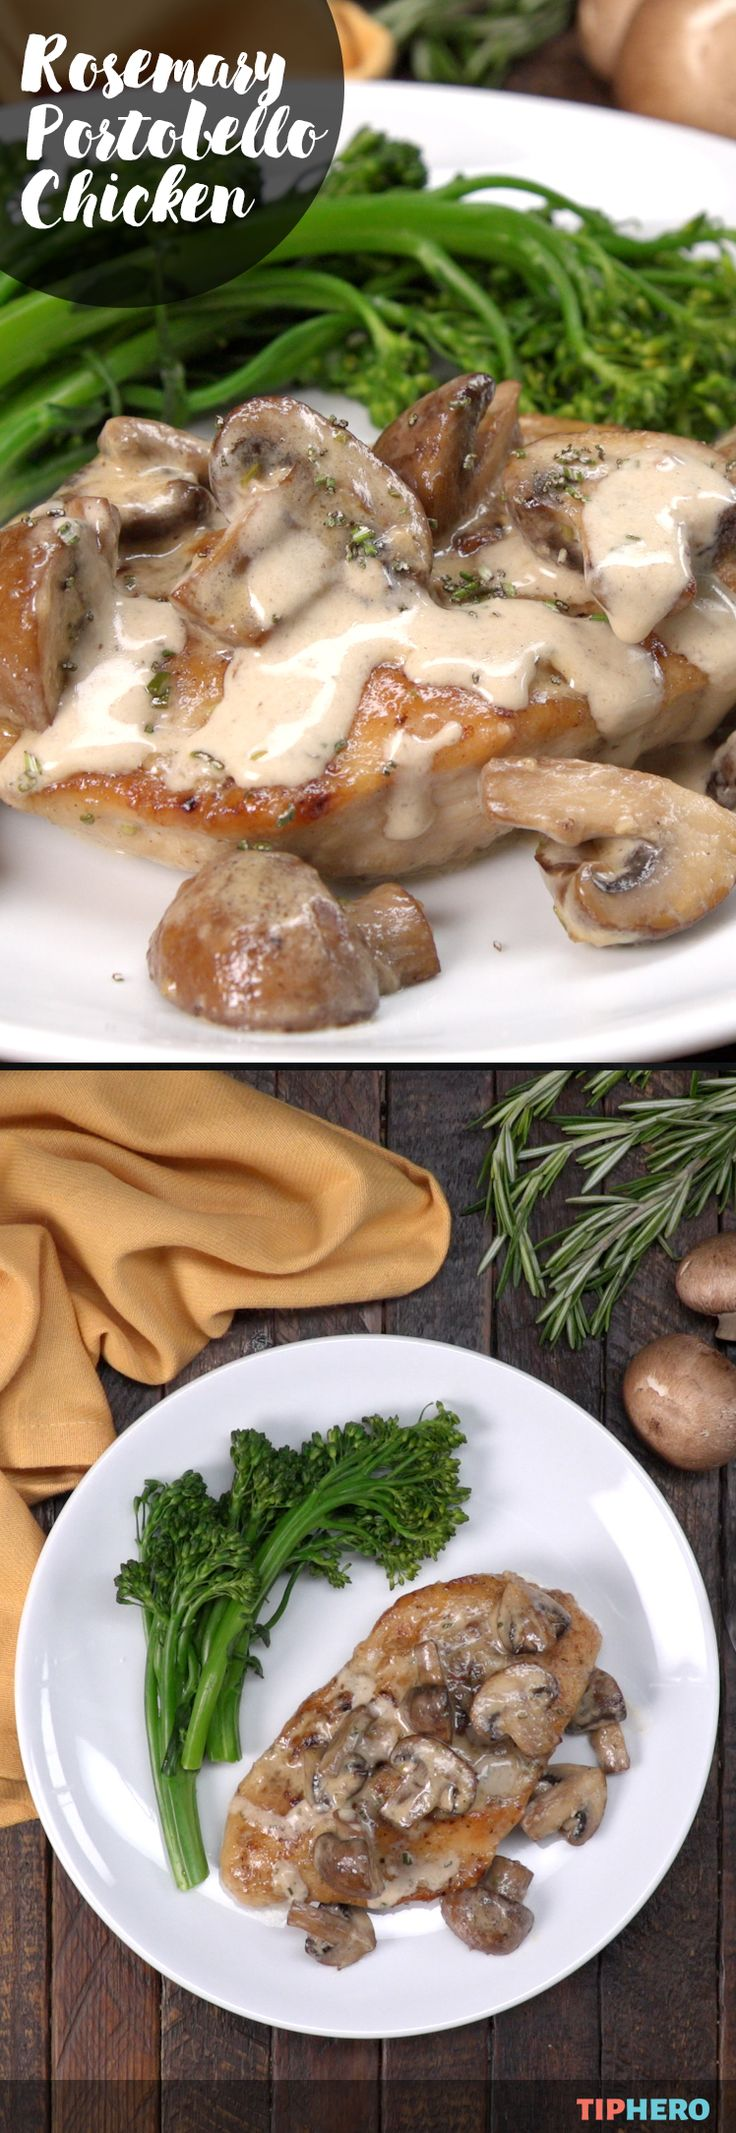 Here's a simple chicken dinner recipe that's full of creamy rich flavor - Rosemary Portobello Chicken. With basic ingredients - chicken, portobello or cremini mushrooms, rosemary, garlic, parsley, heavy cream and chicken stock, it requires about ten minutes to prep adn 40 to cook.  Bonus: you can make it all in just one skillet! Let us show you how, click for the full recipe and video.